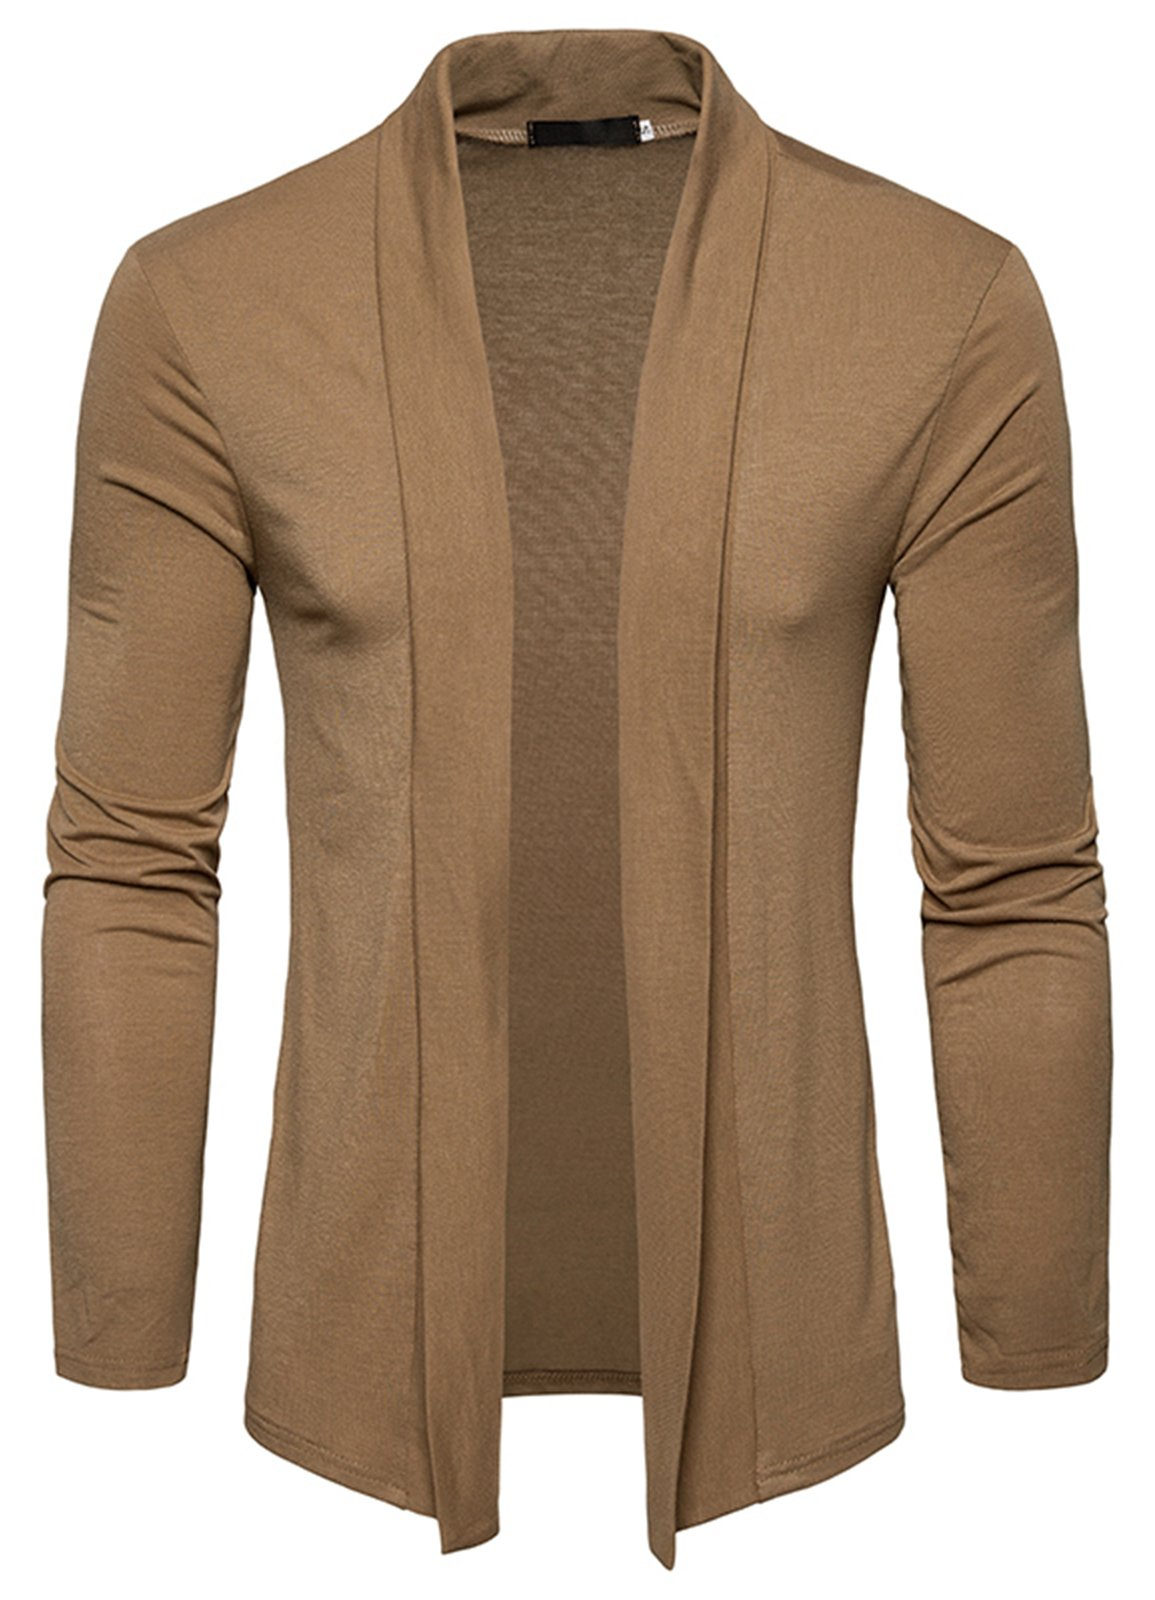 WHATLEES Mens Casual Long Sleeve Open Front Slim Fit Shawl Collar Cardigans Sweater B941-Khaki-M